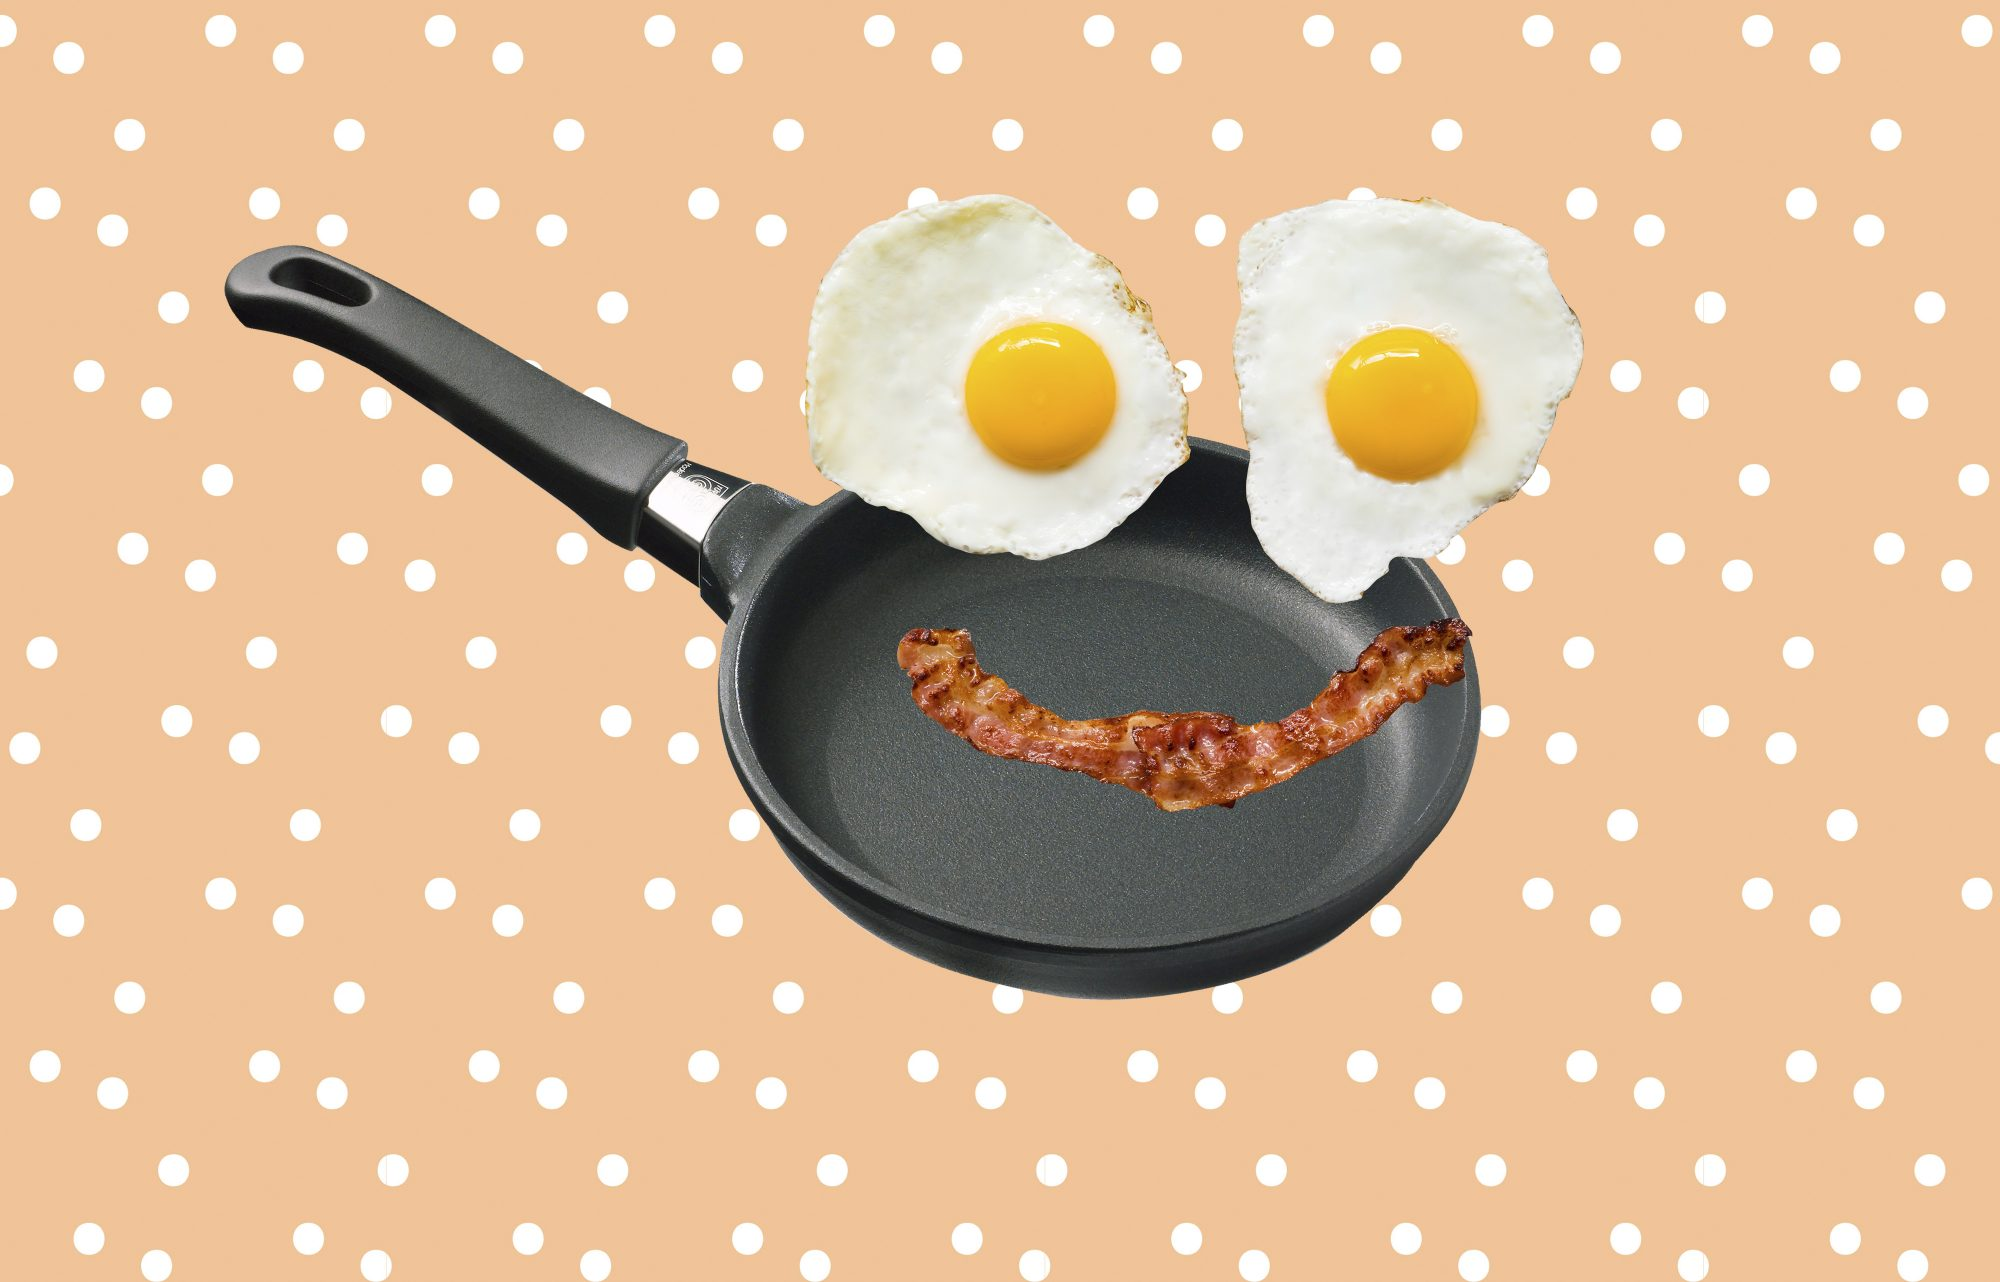 The Major Mistake You're Making With Your Nonstick Cookware